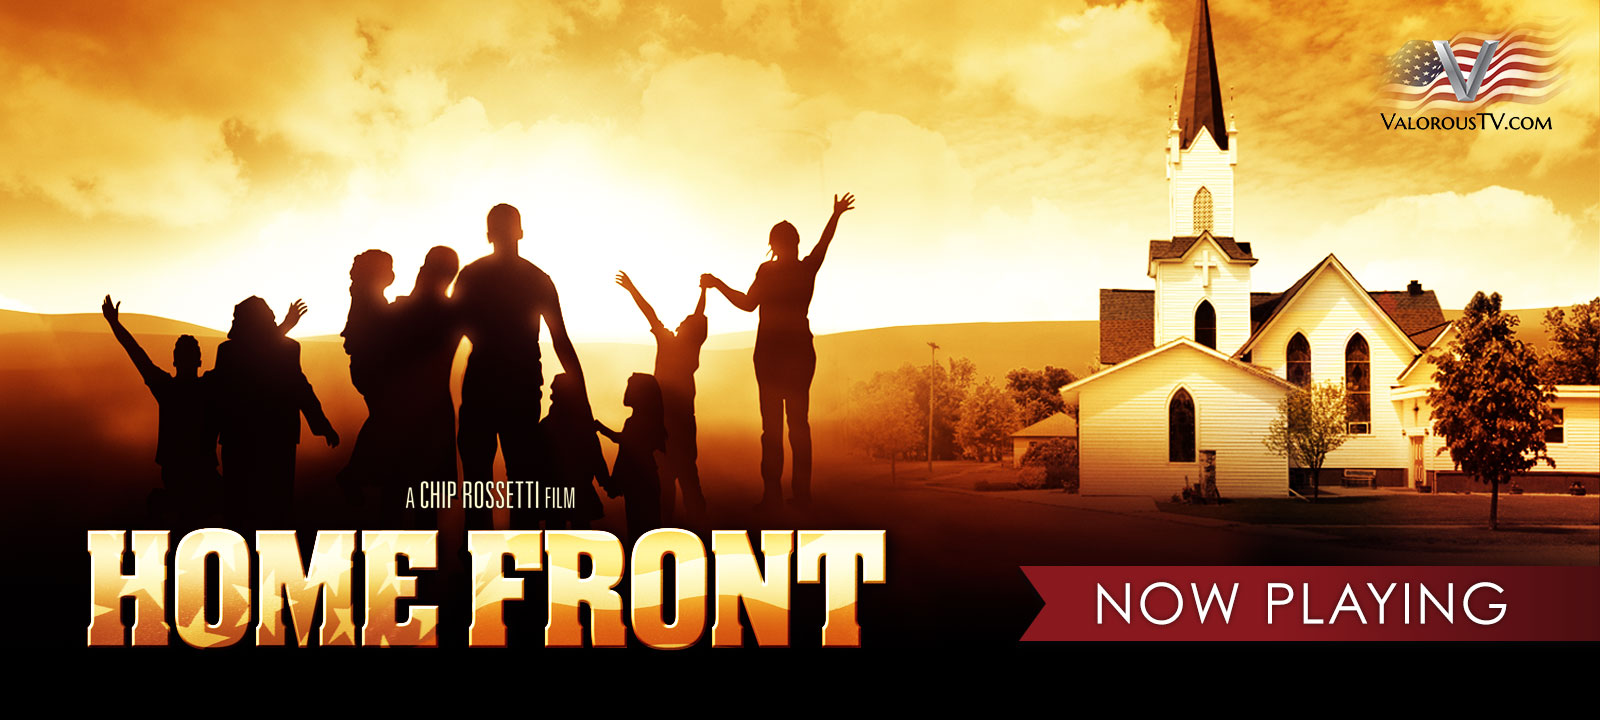 Home Front Movie